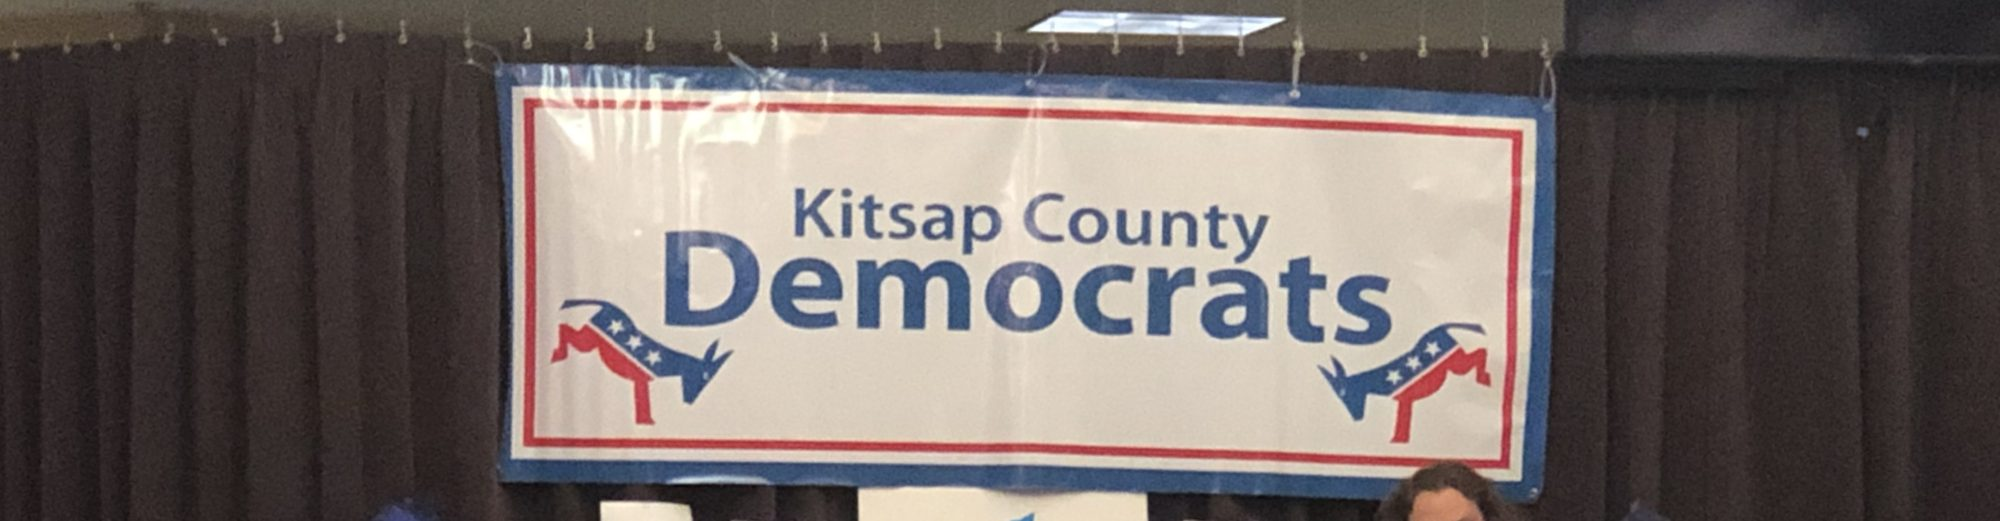 Kitsap County Democratic Central Committee | Change that matters